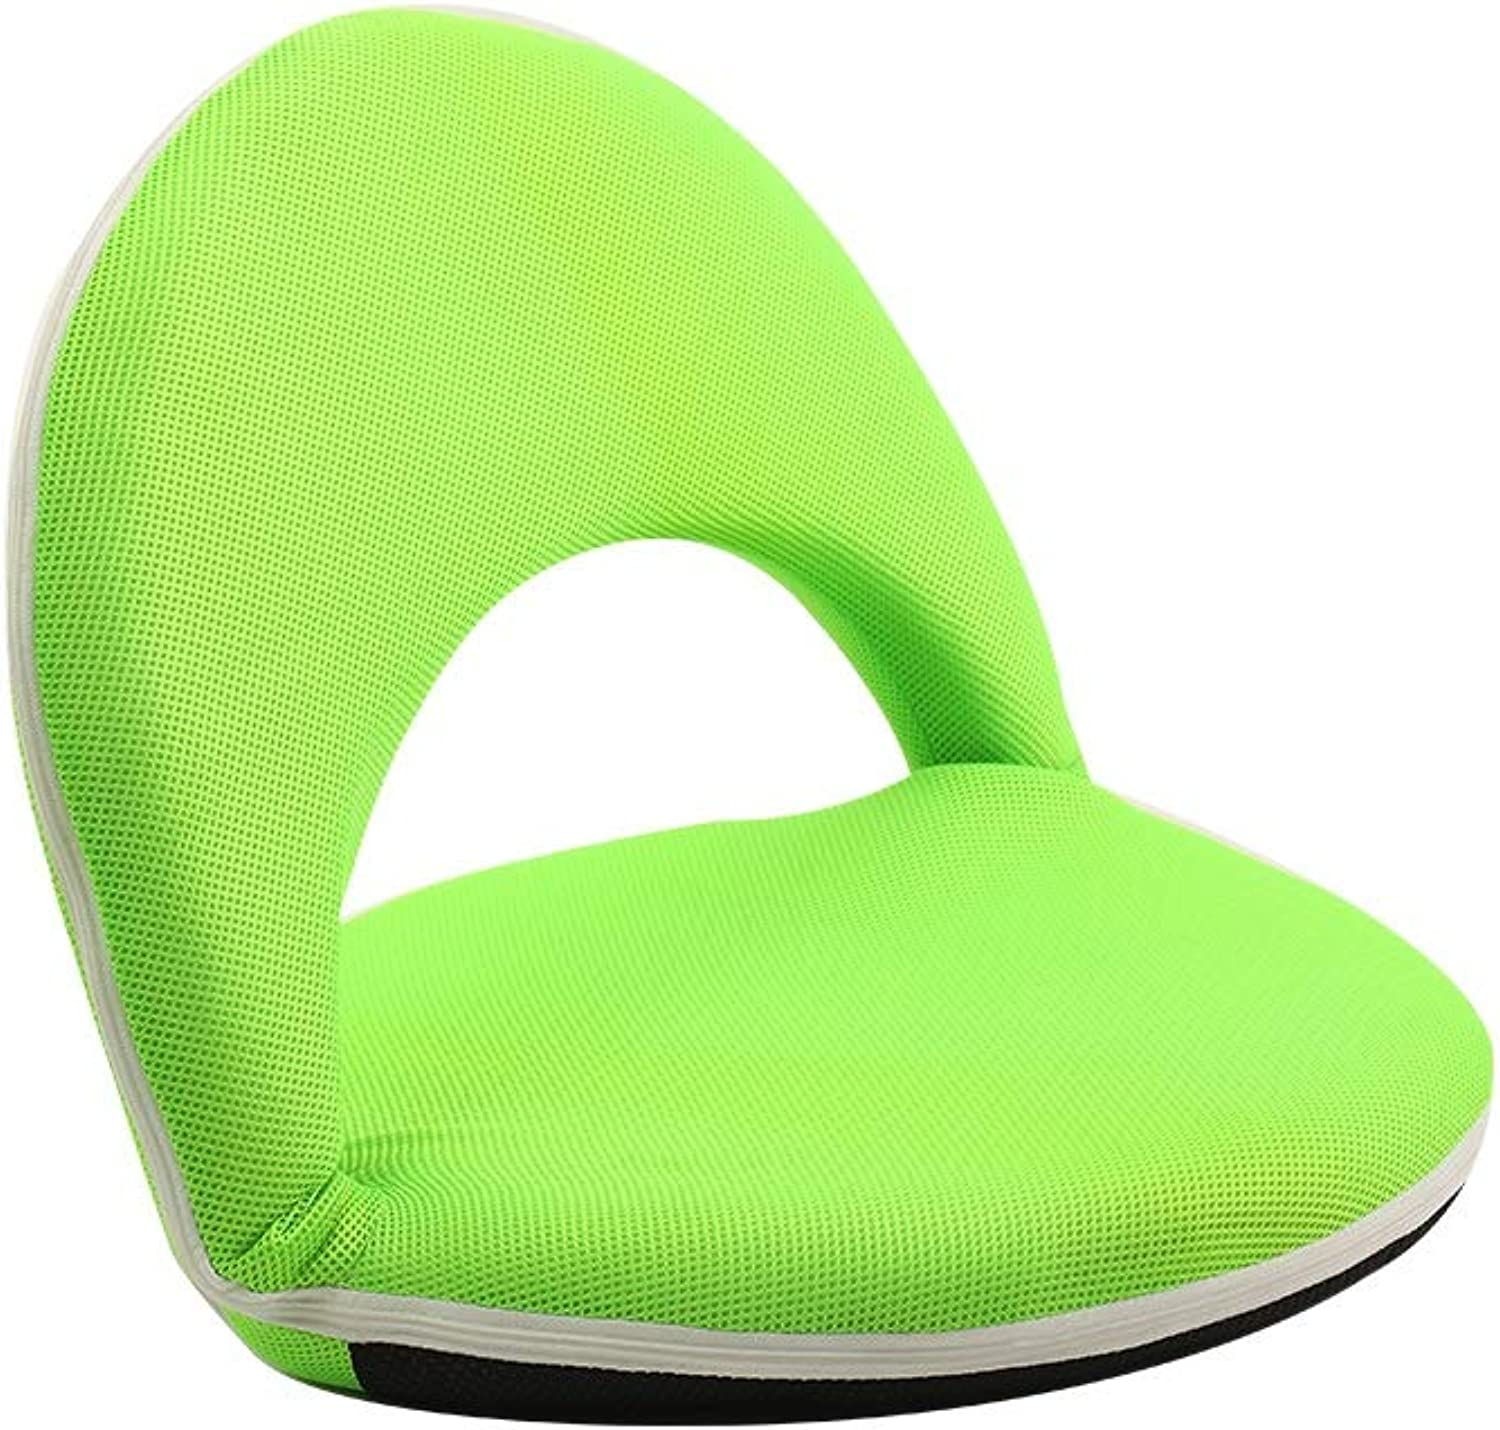 Lazy Couch,with Backrest Adult Floor Seating Balcony Bay Window Meditation Chair Lounge Chair, Multi-color Optional (color   Green)